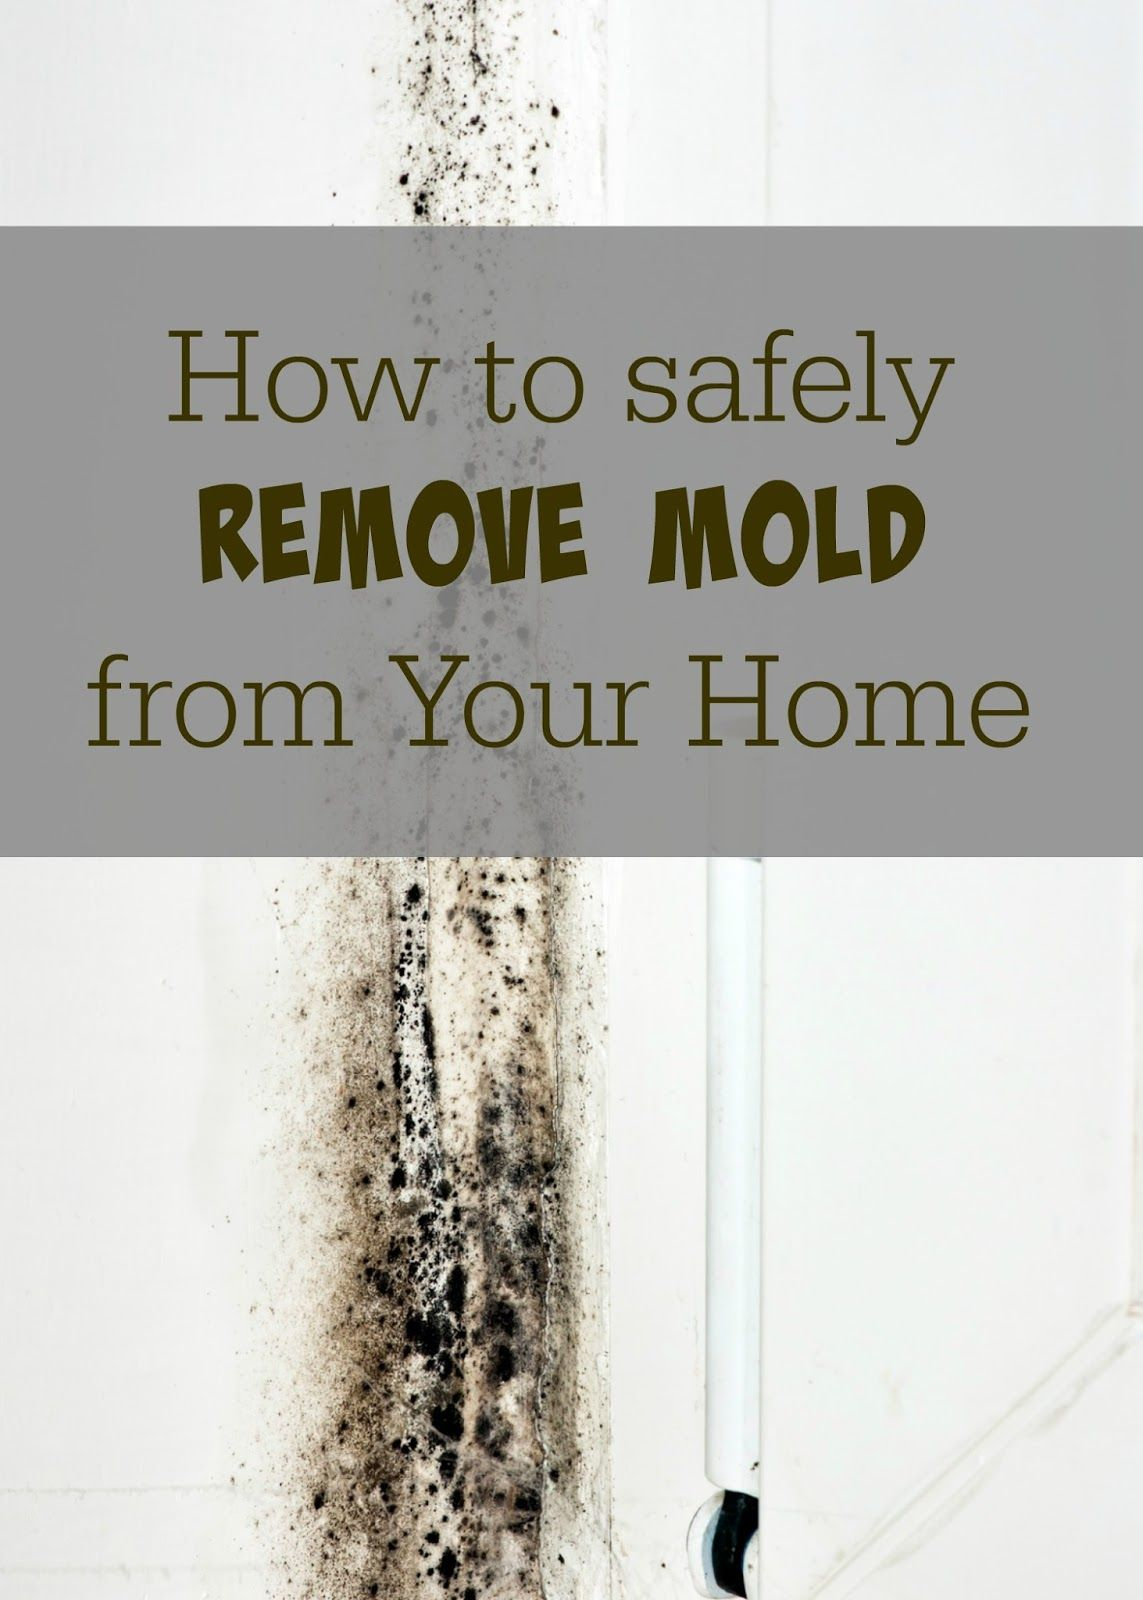 How To Safely And Effectively Remove Mold From Your Home Works On Black Spores Other Mildew Issues This Is Effective Can Save You